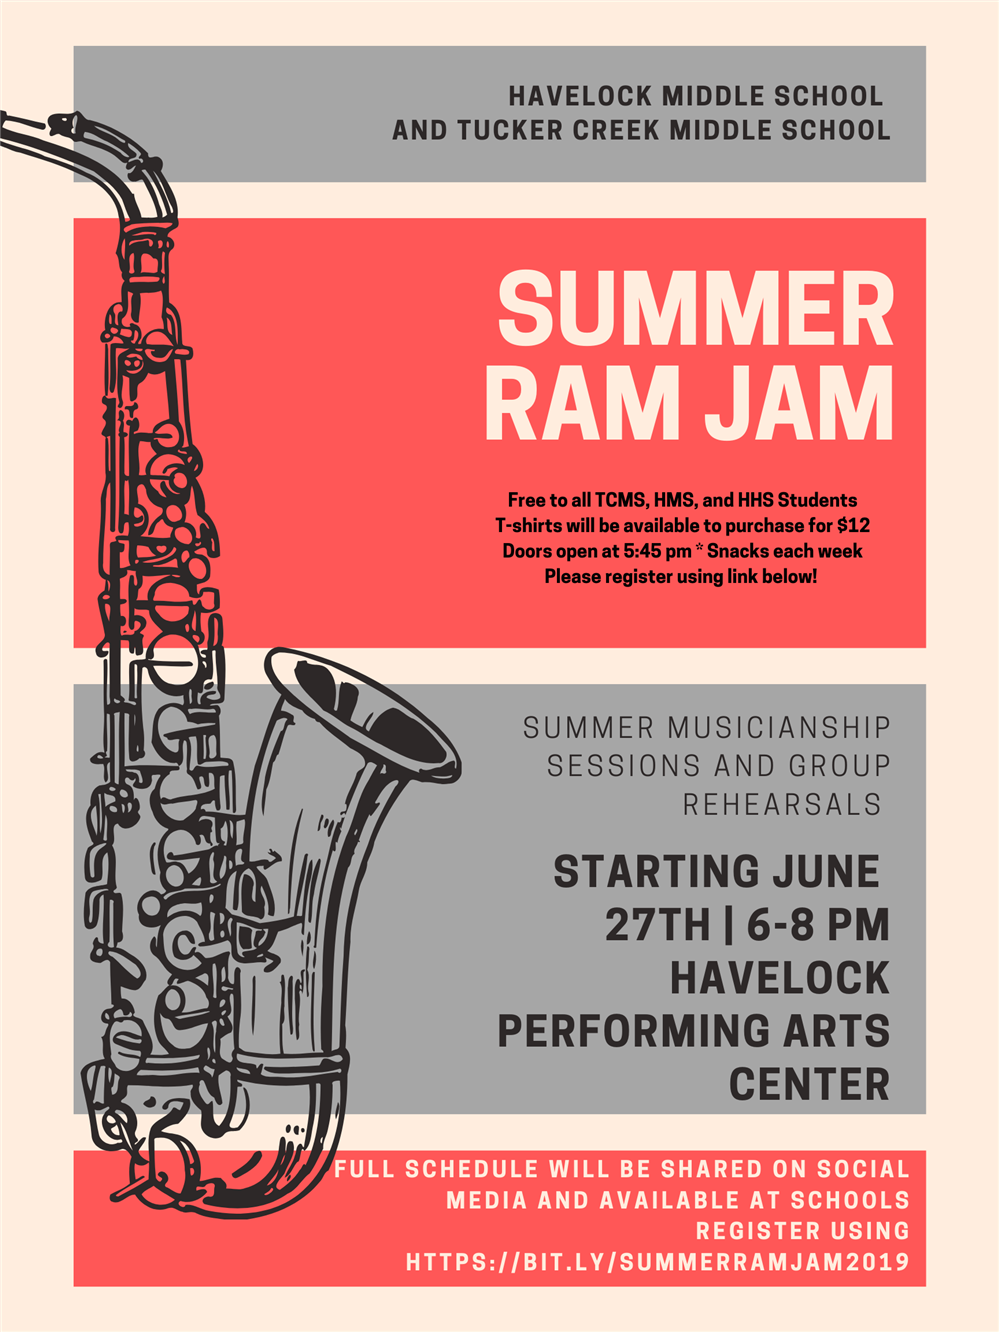 Summer Ram Jam Band Program